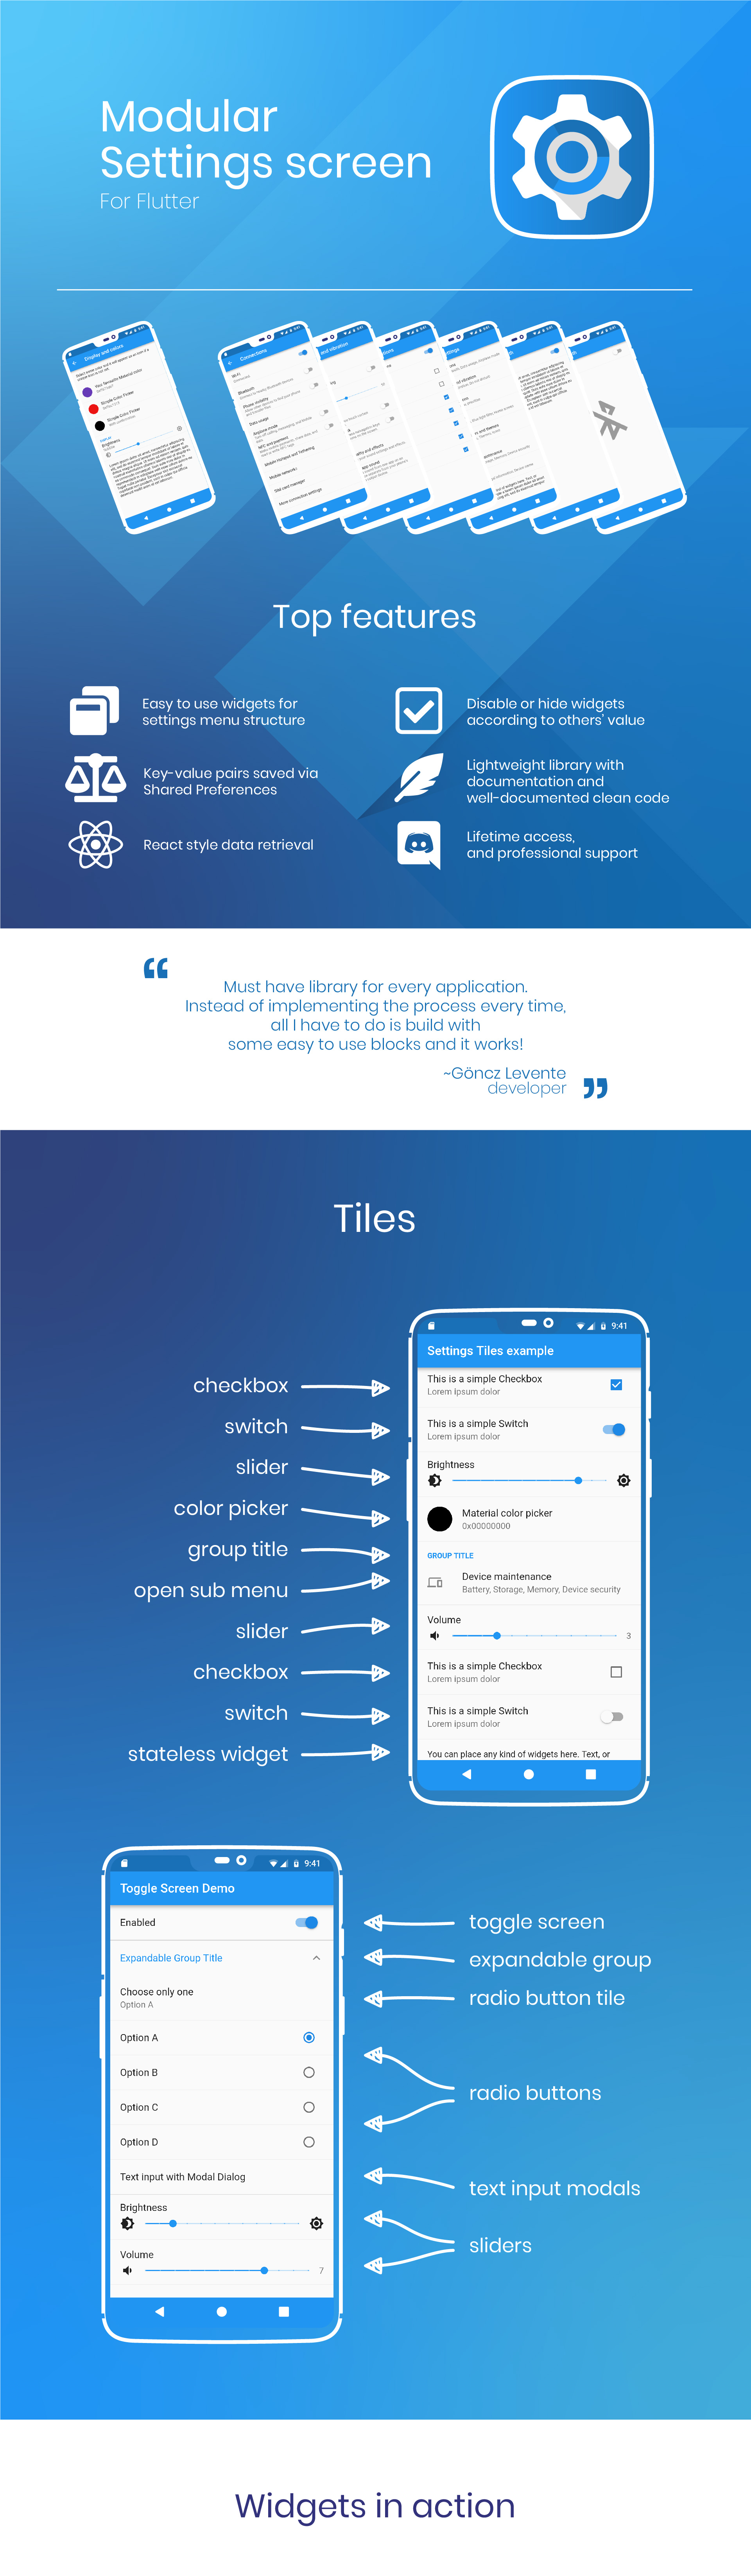 Flutter Settings Screen with Shared Preferences for Android & iOS - 3